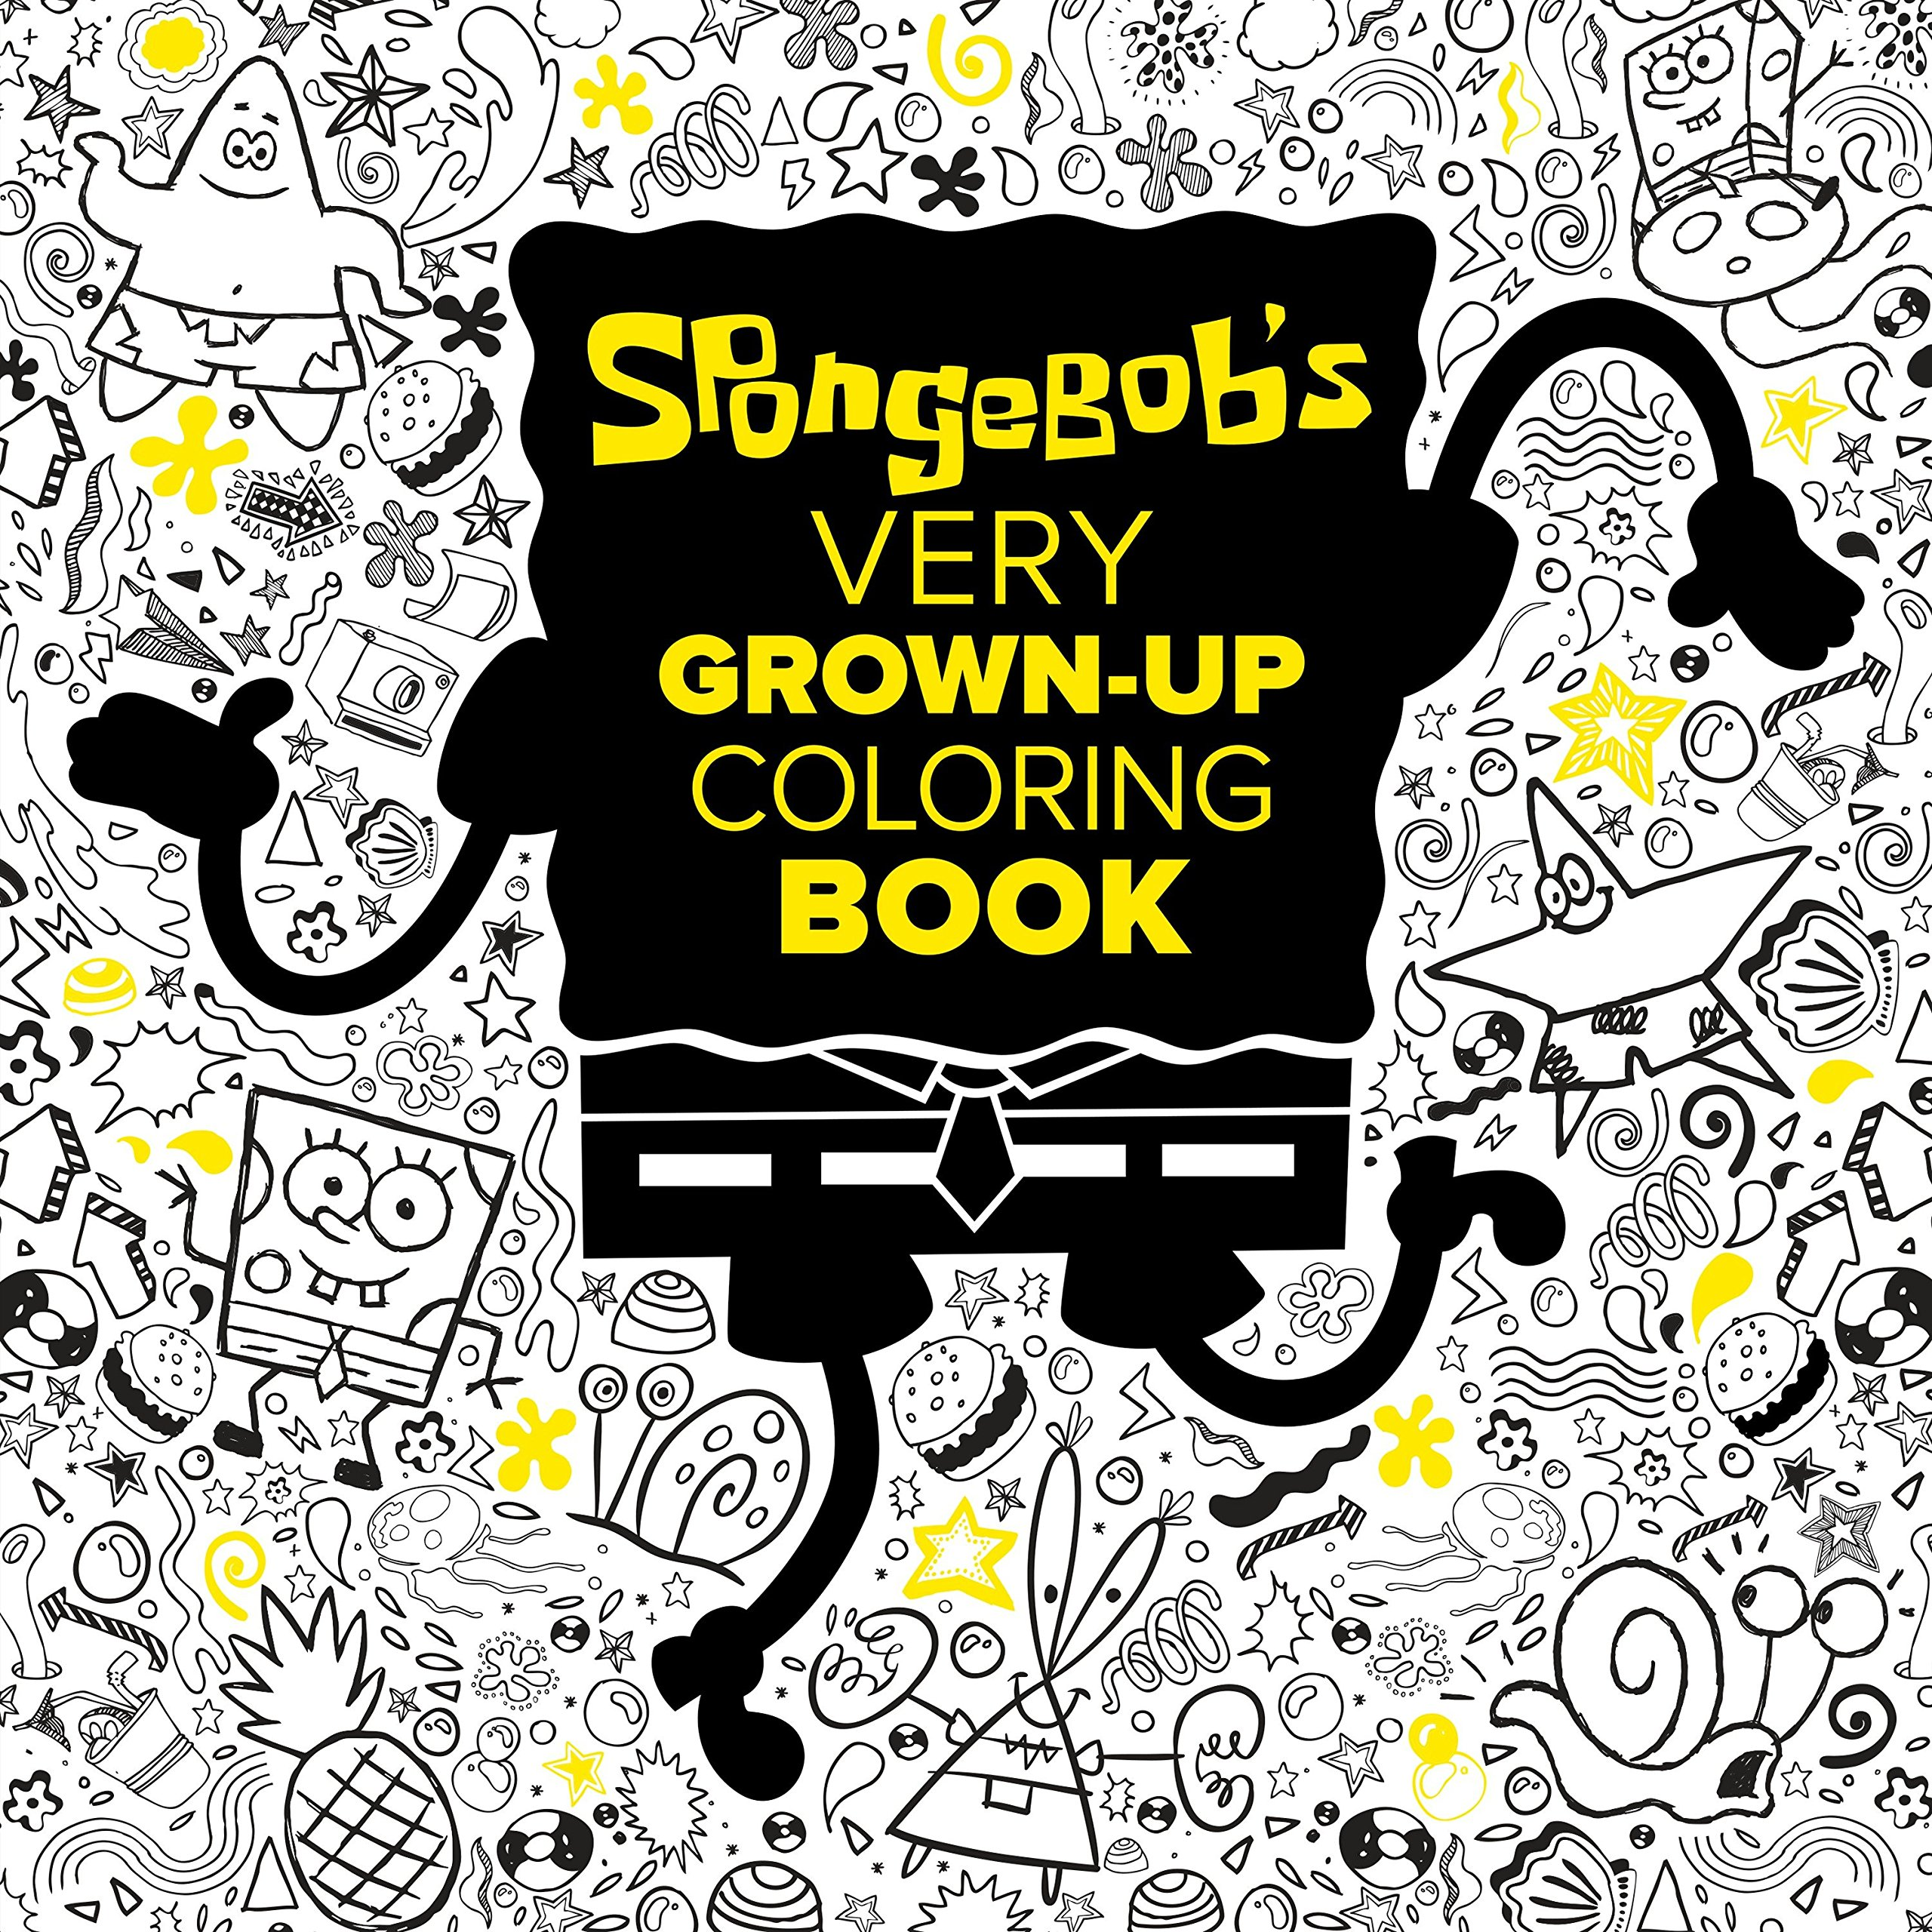 Spongebobs very grown up coloring book spongebob squarepants